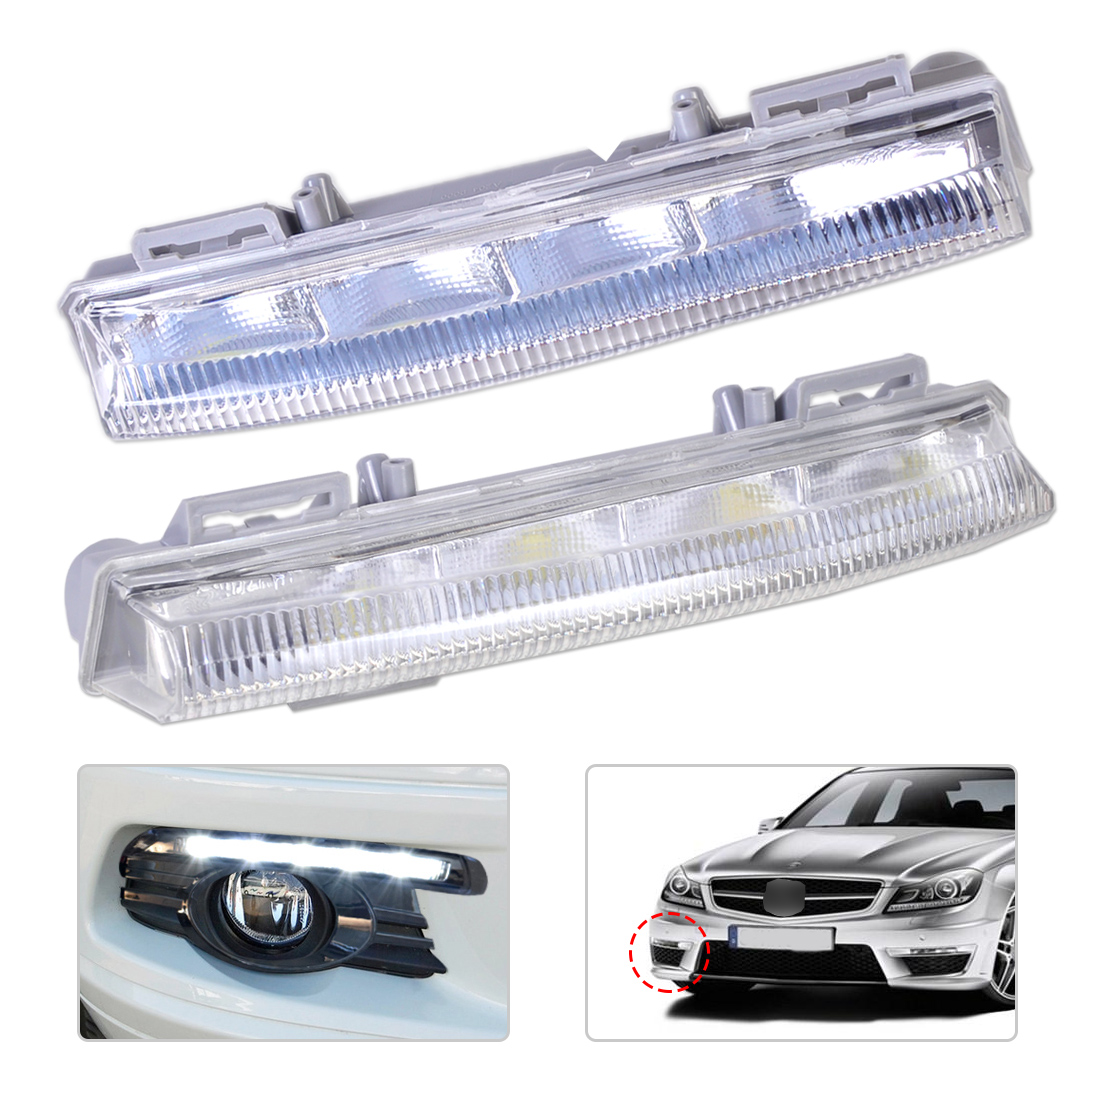 2049068900 204 906 90 00 Daytime Running Lamp Fog Light Left Side for Mercedes Benz  C E SLK Class W204 S204 W212 R172 2012 2013 july king 1pc left driver side fog light lamp case for mercedes benz r171 w164 w203 w204 w216 w230 w253 amg aftermarket